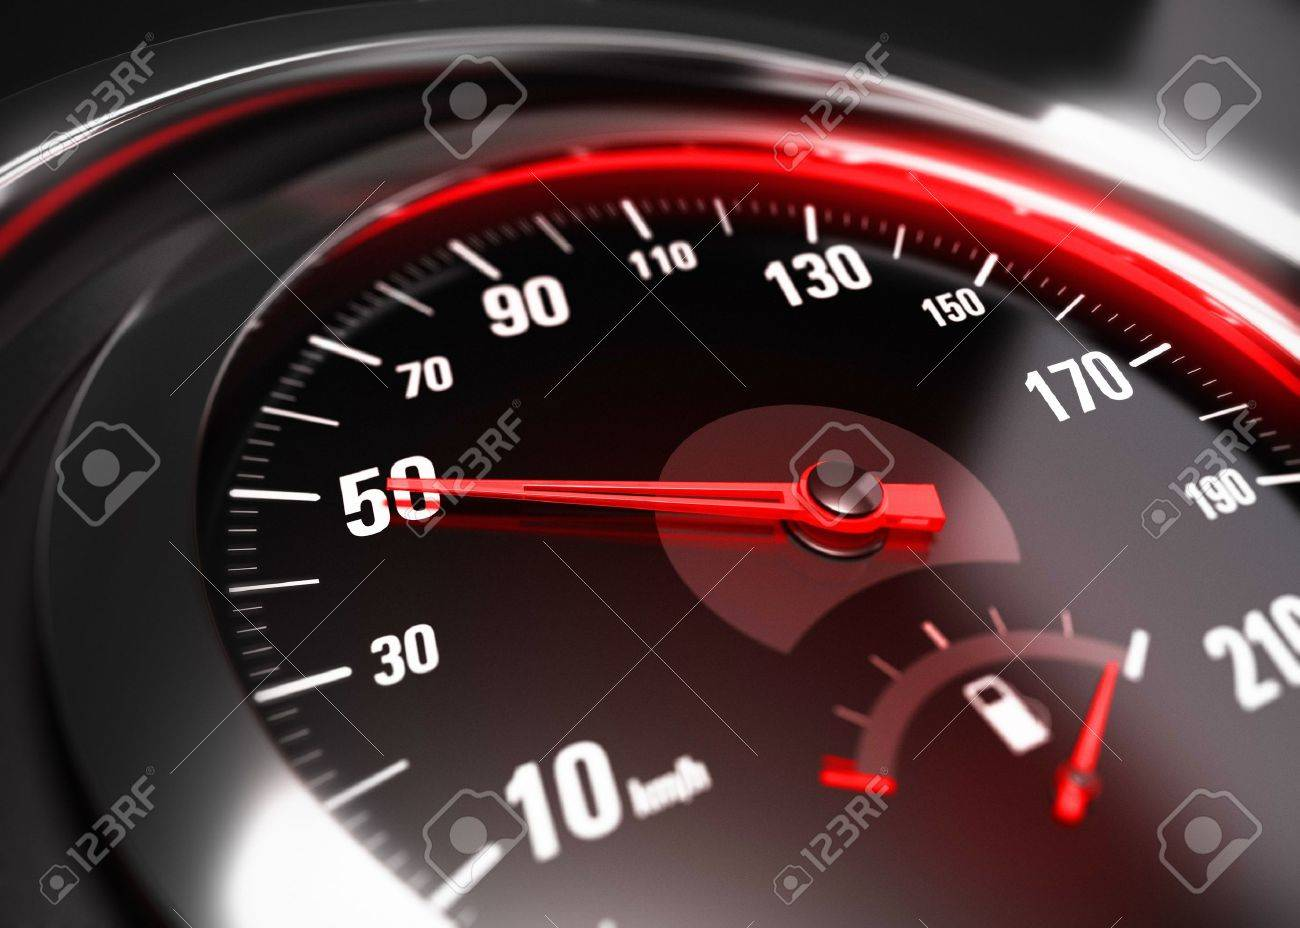 Close up of a car speedometer with the needle pointing 50 Km h, blur effect, conceptual image for safe driving concept Stock Photo - 21398020